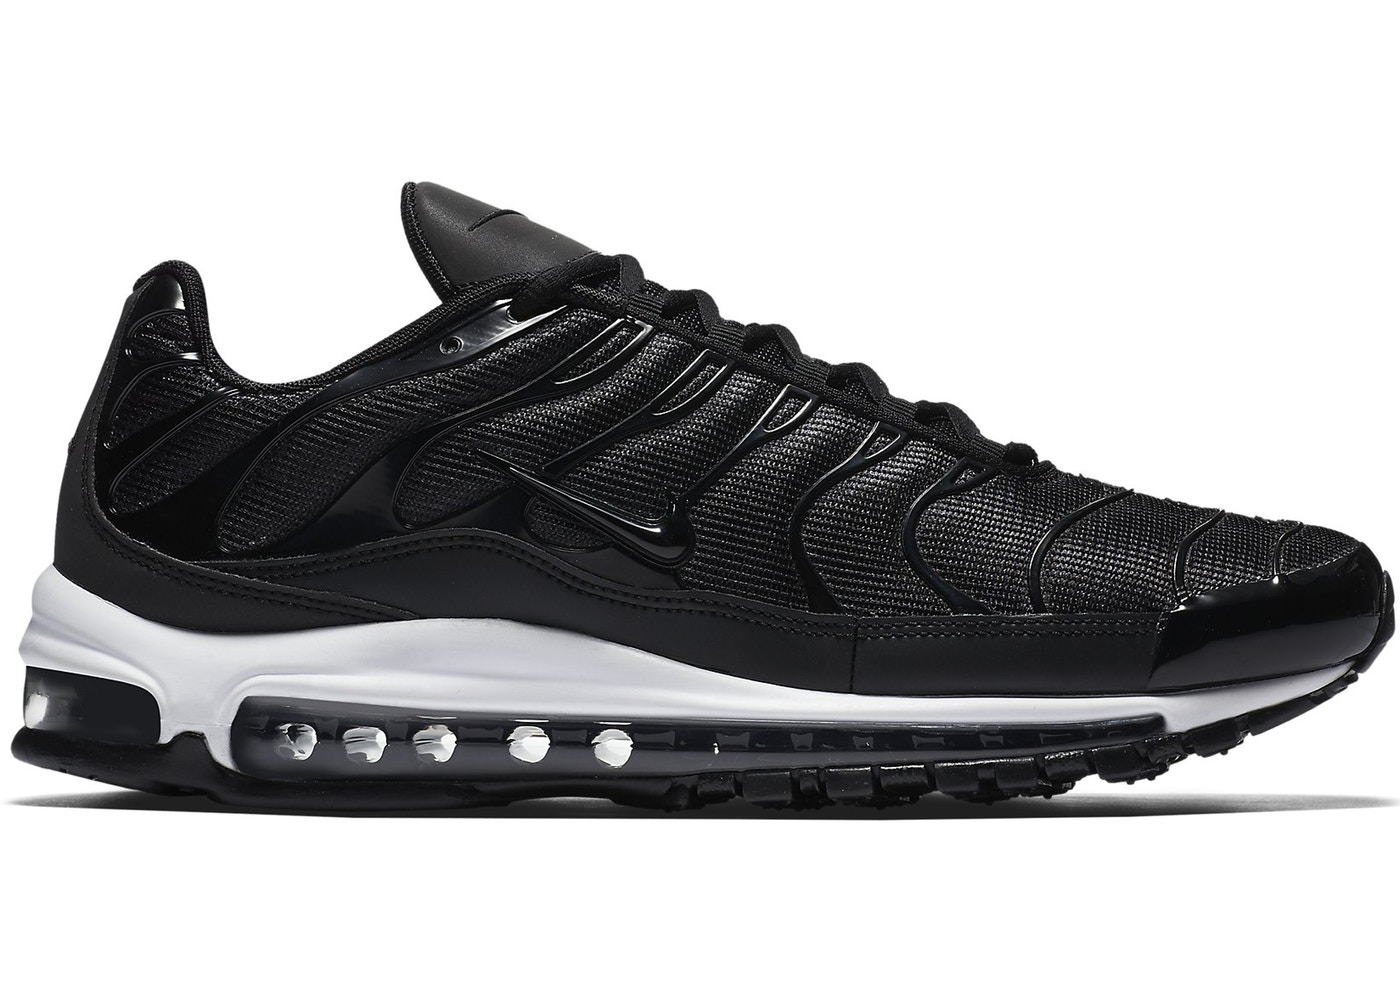 check out 193a5 13a81 Air Max 97 Plus Black White